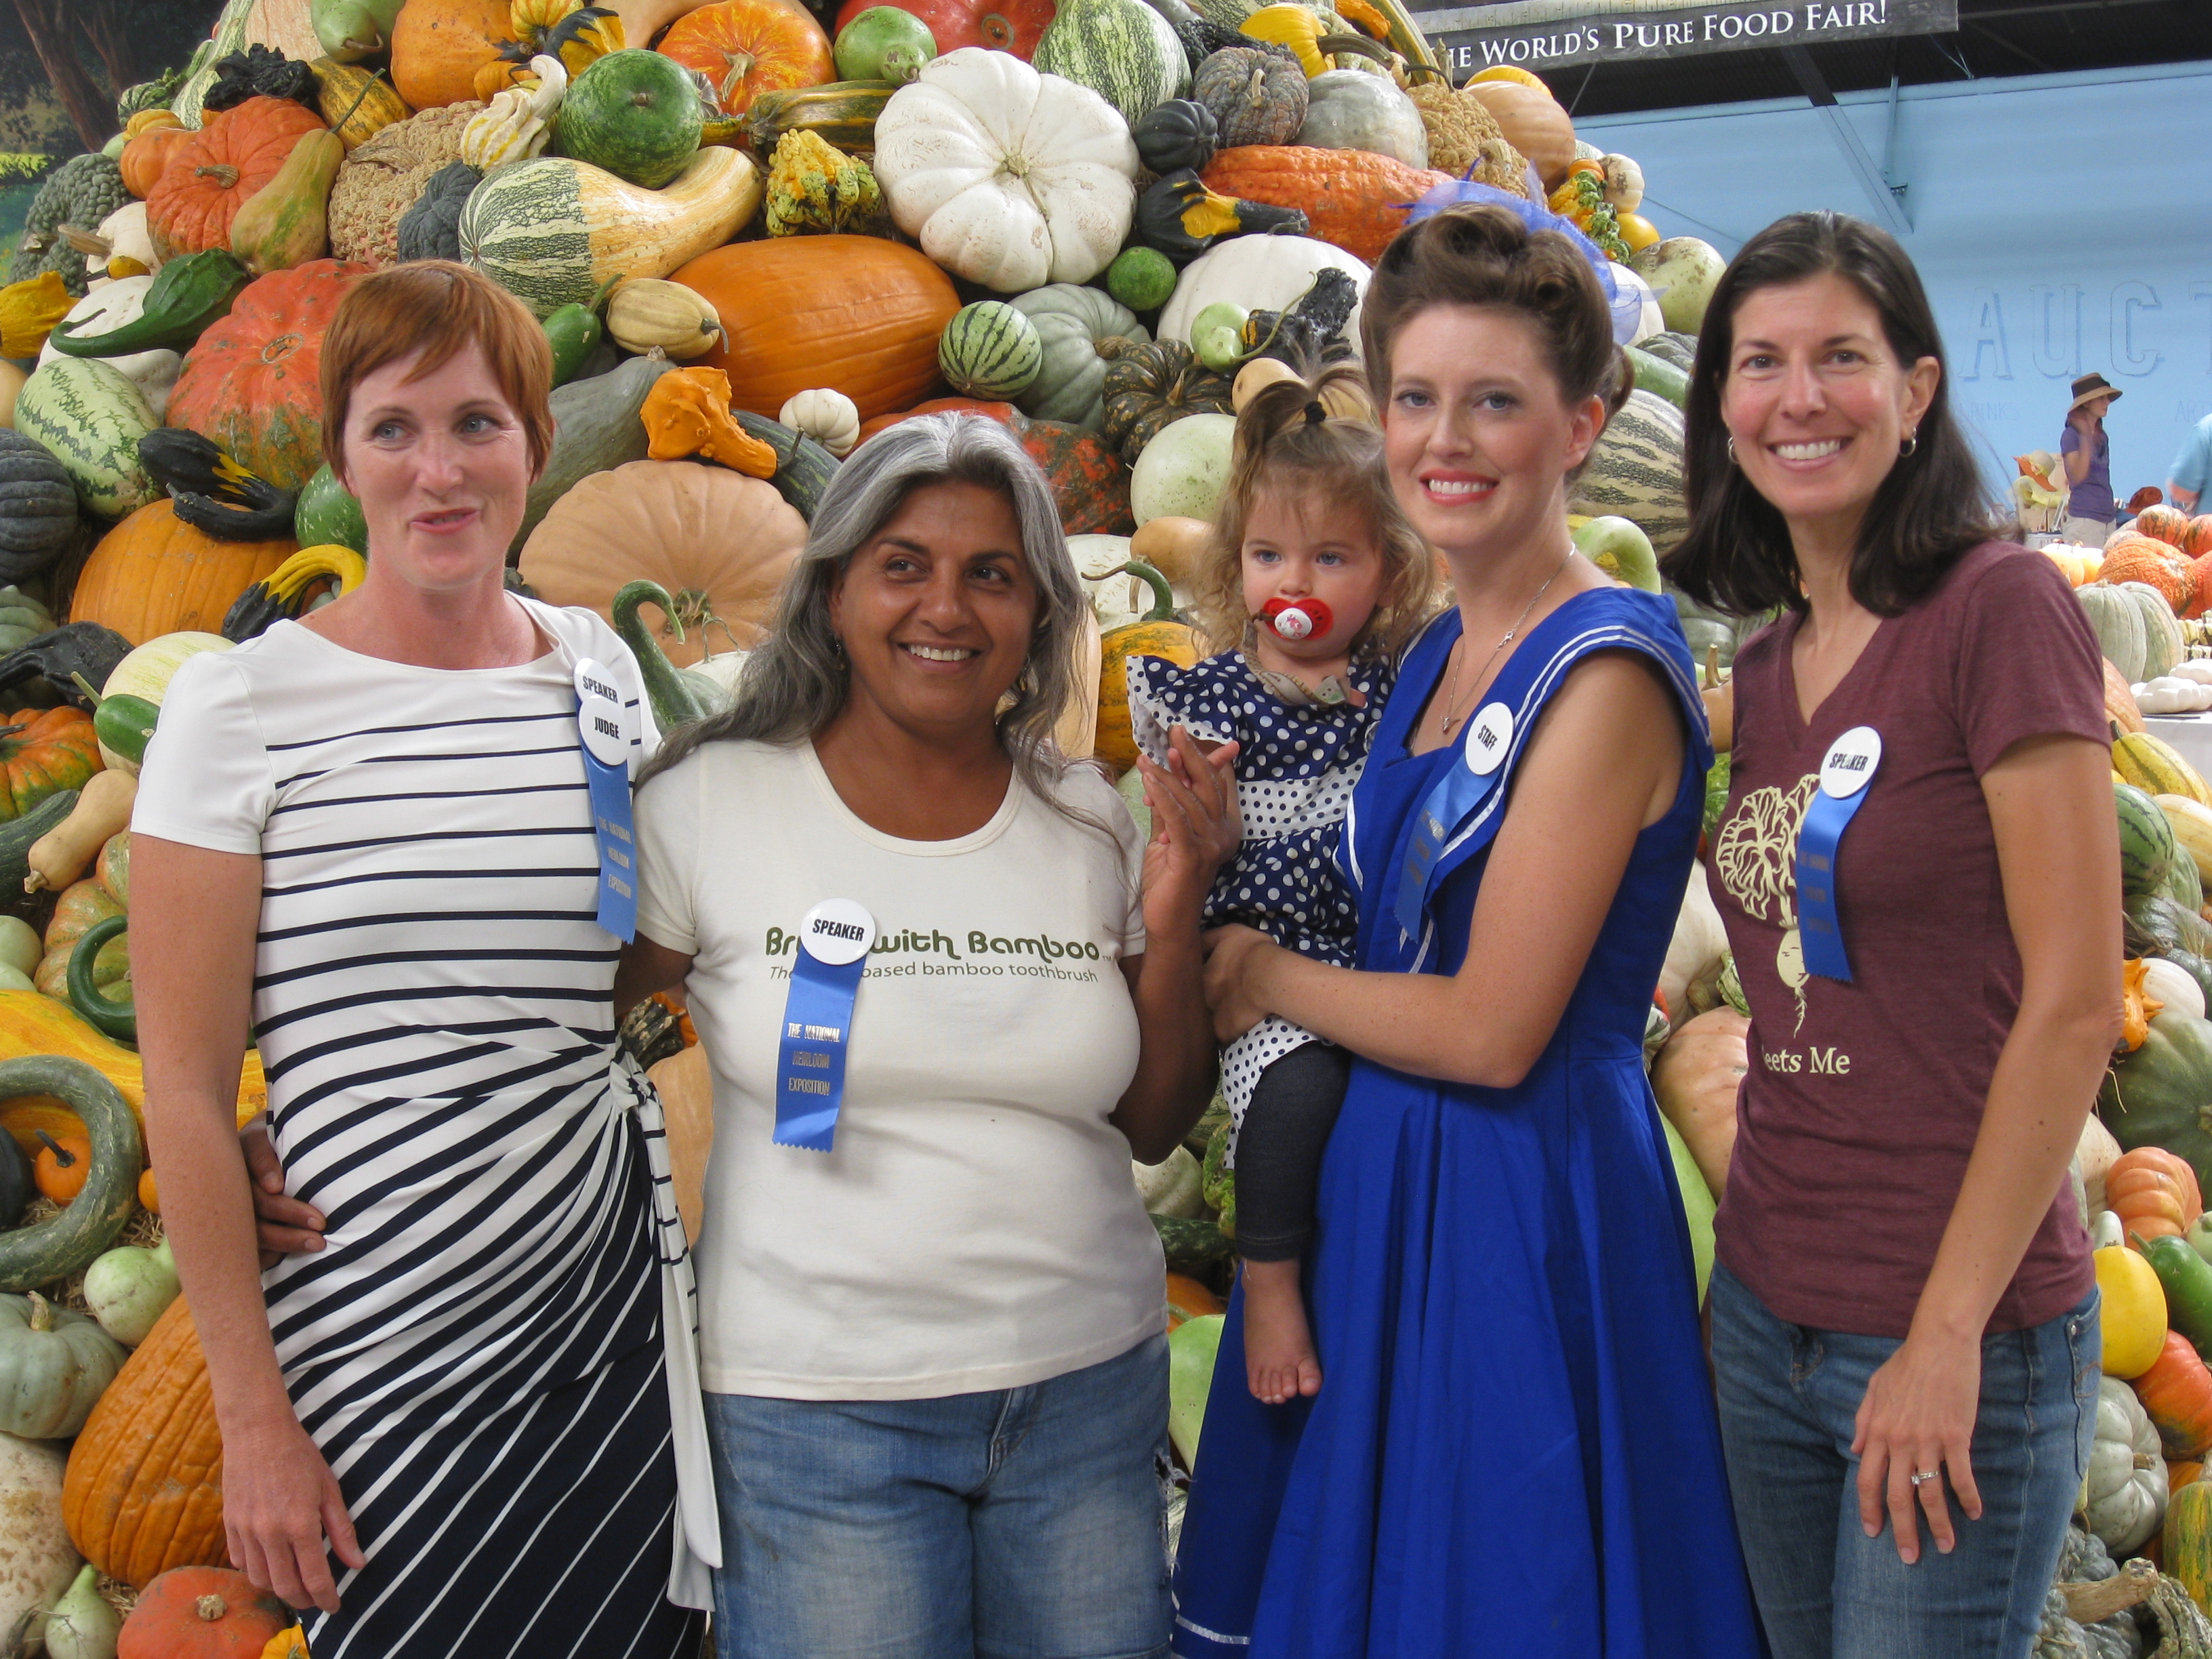 From left: Anna Peach of Squash and Awe Farm in Hawaii, Pearl from The Growing Home, Emile Gettle from Baker Creek Heirloom Seeds & yours truly.